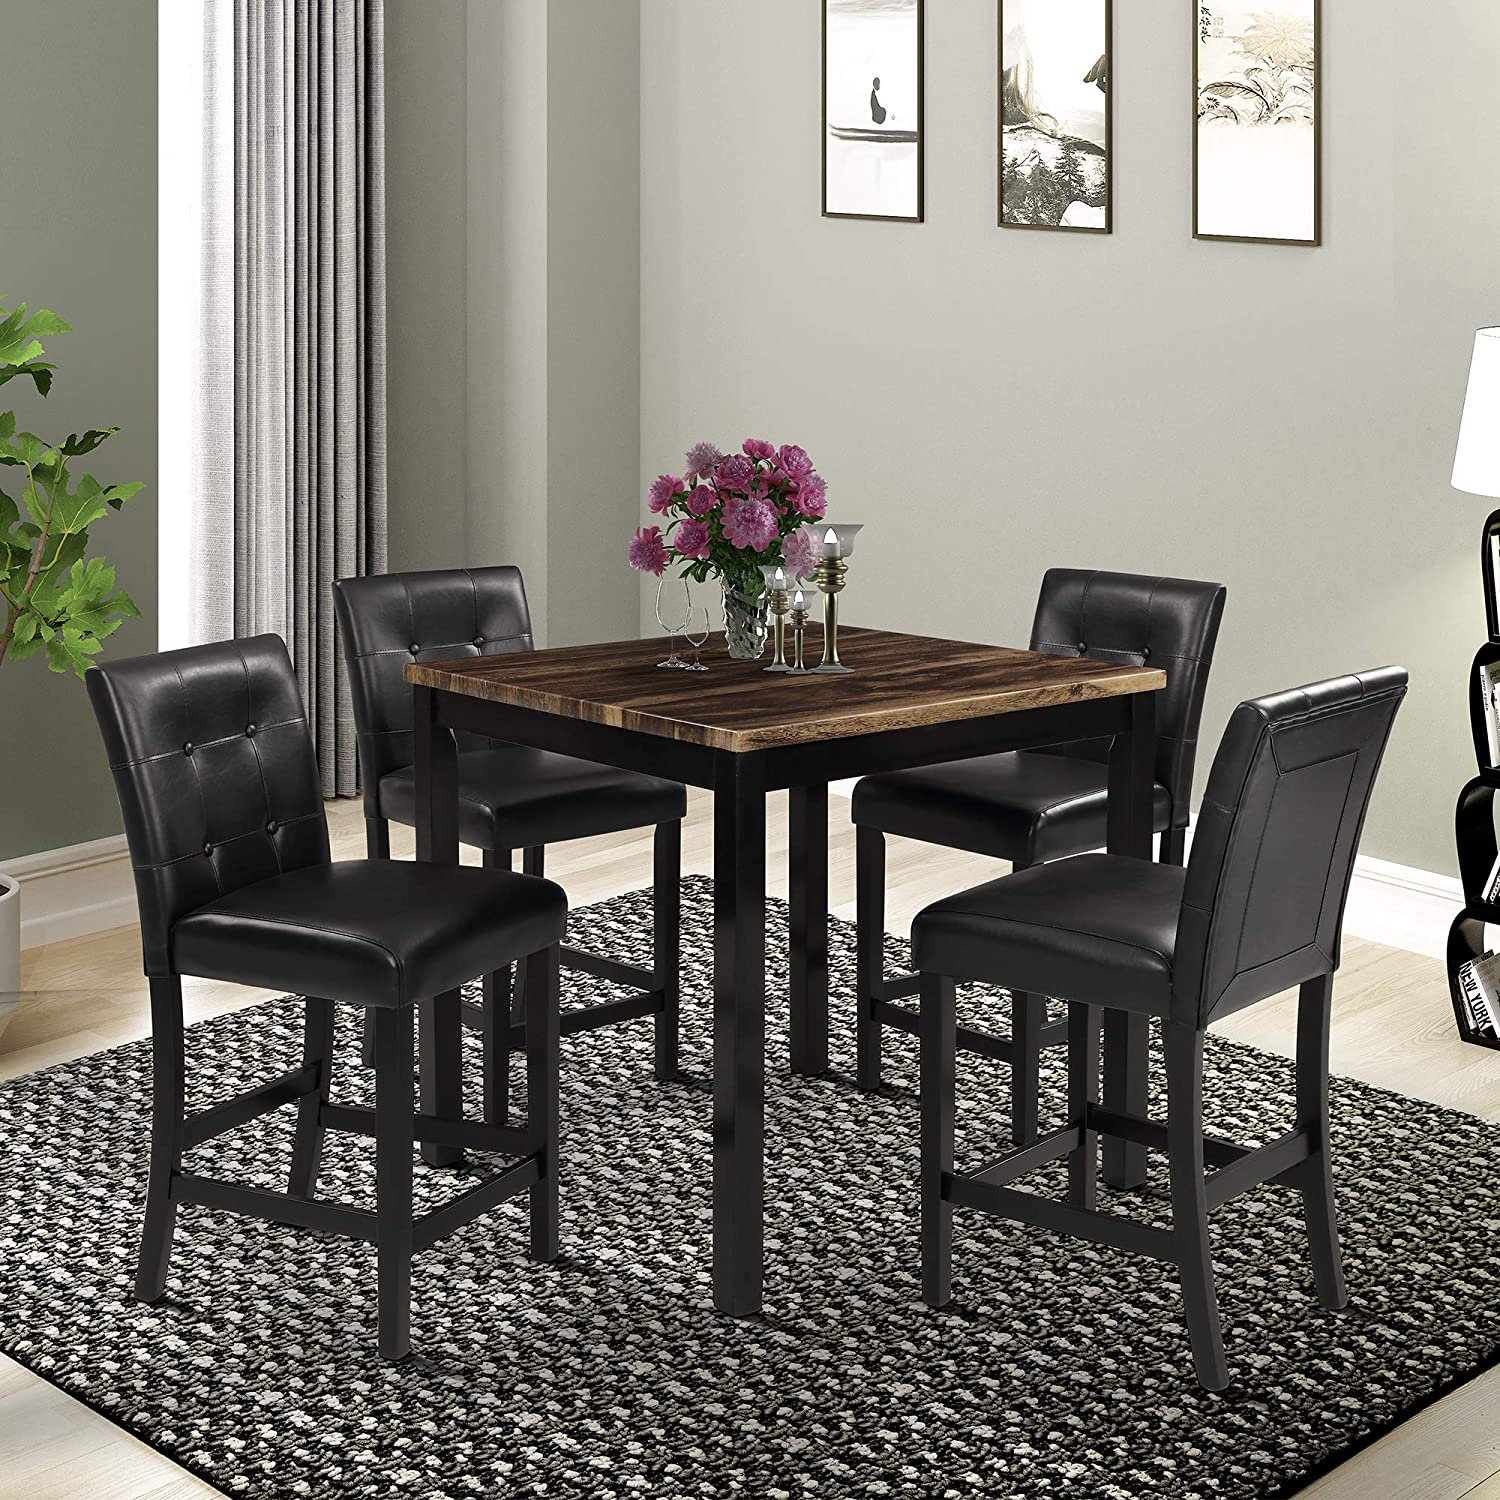 LENTIA 5 Piece Kitchen Dining Table Set Marble Top Counter Height Dining Table Set with 4 Leather-Upholstered Chairs Brown Marble Top 2